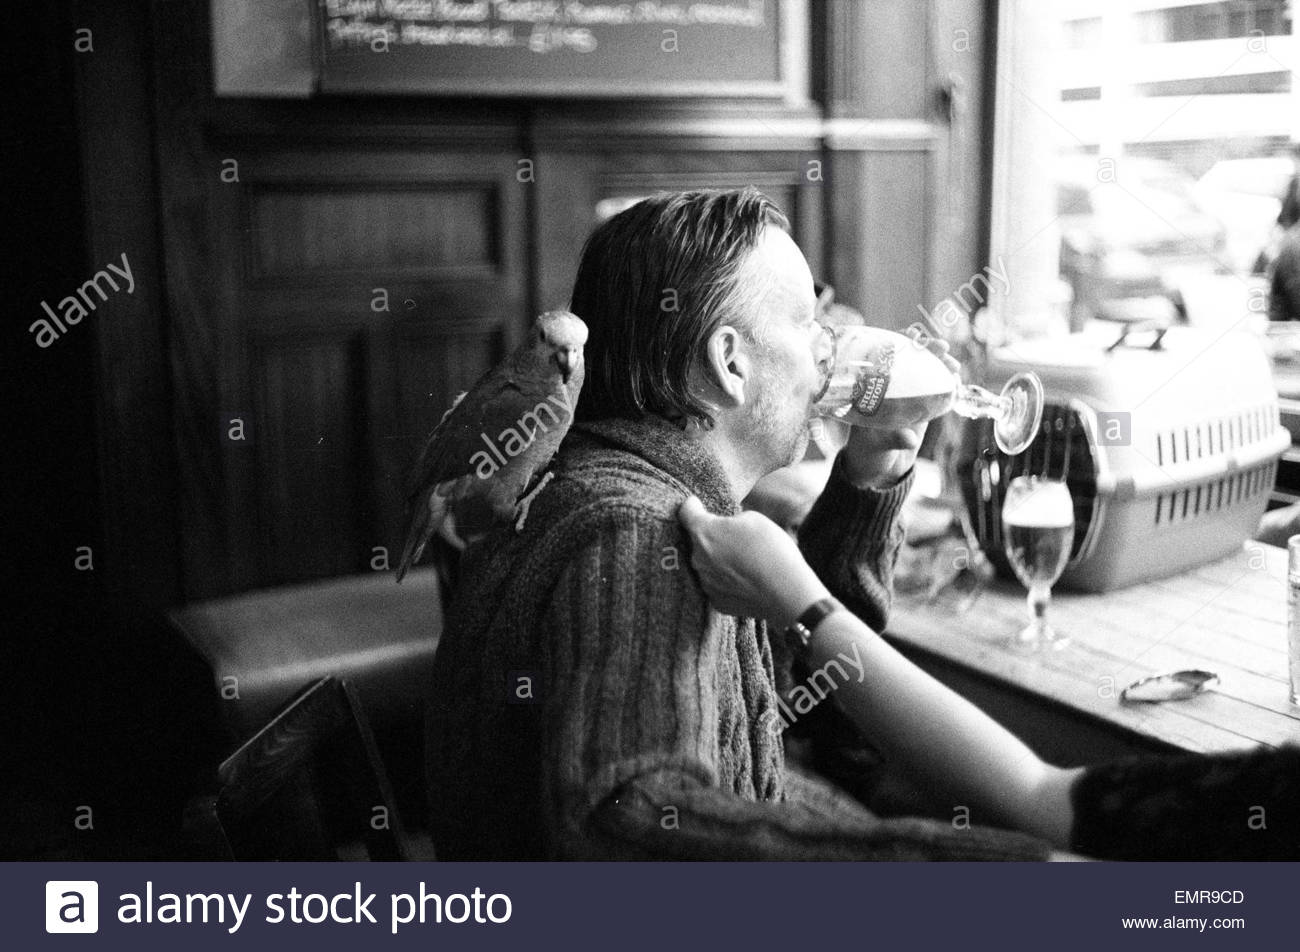 A man drinks a beer with a parrot on his shoulder in the Elgin Pub Ladbroke Grove, Notting Hill, London W11 - Stock Image